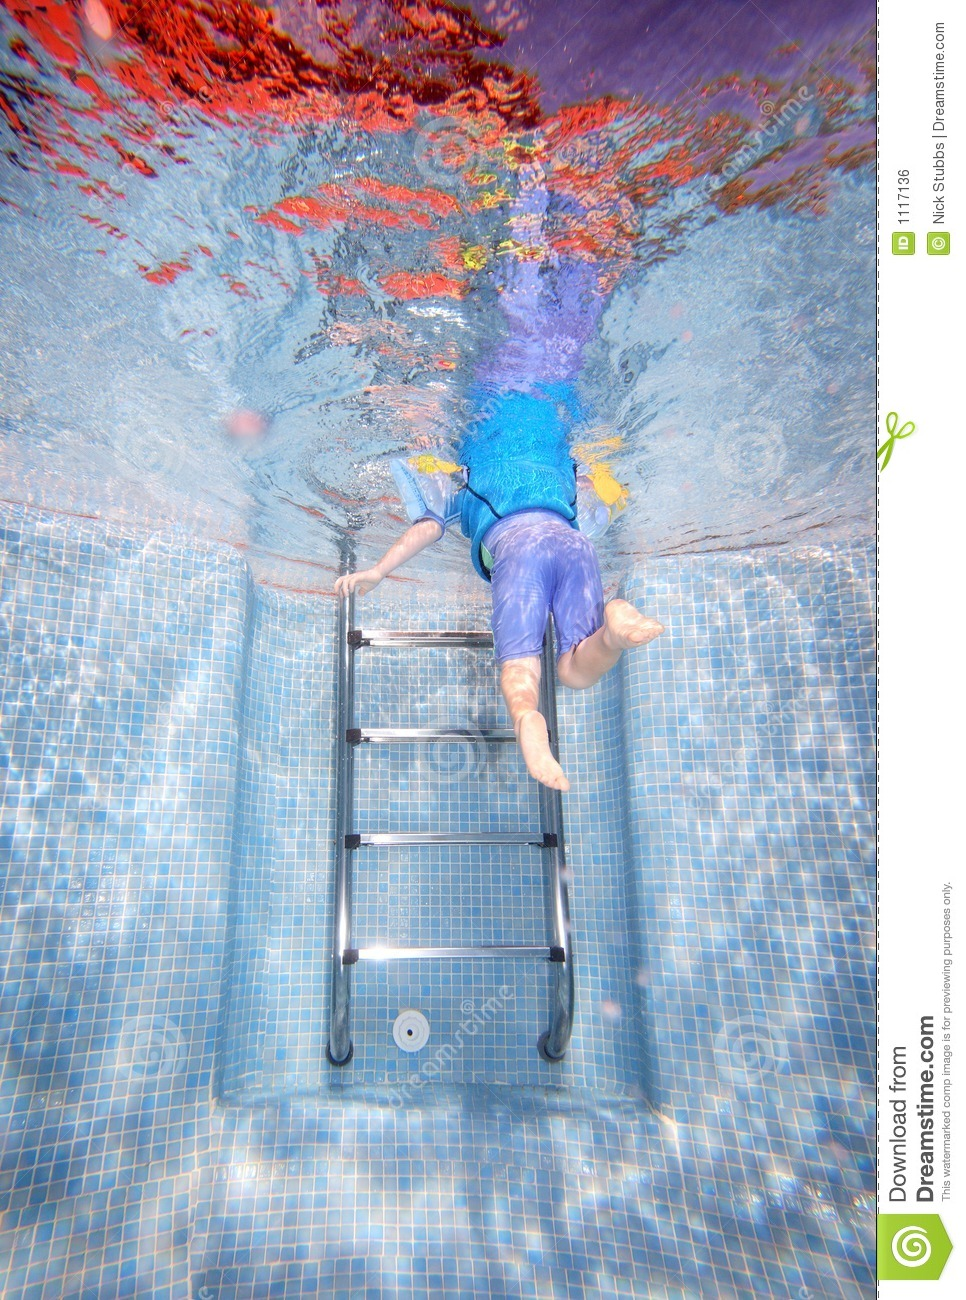 Underwater Photo Of Young Boy Climbing Out Of Swimming Pool Royalty Free Stock Image Image